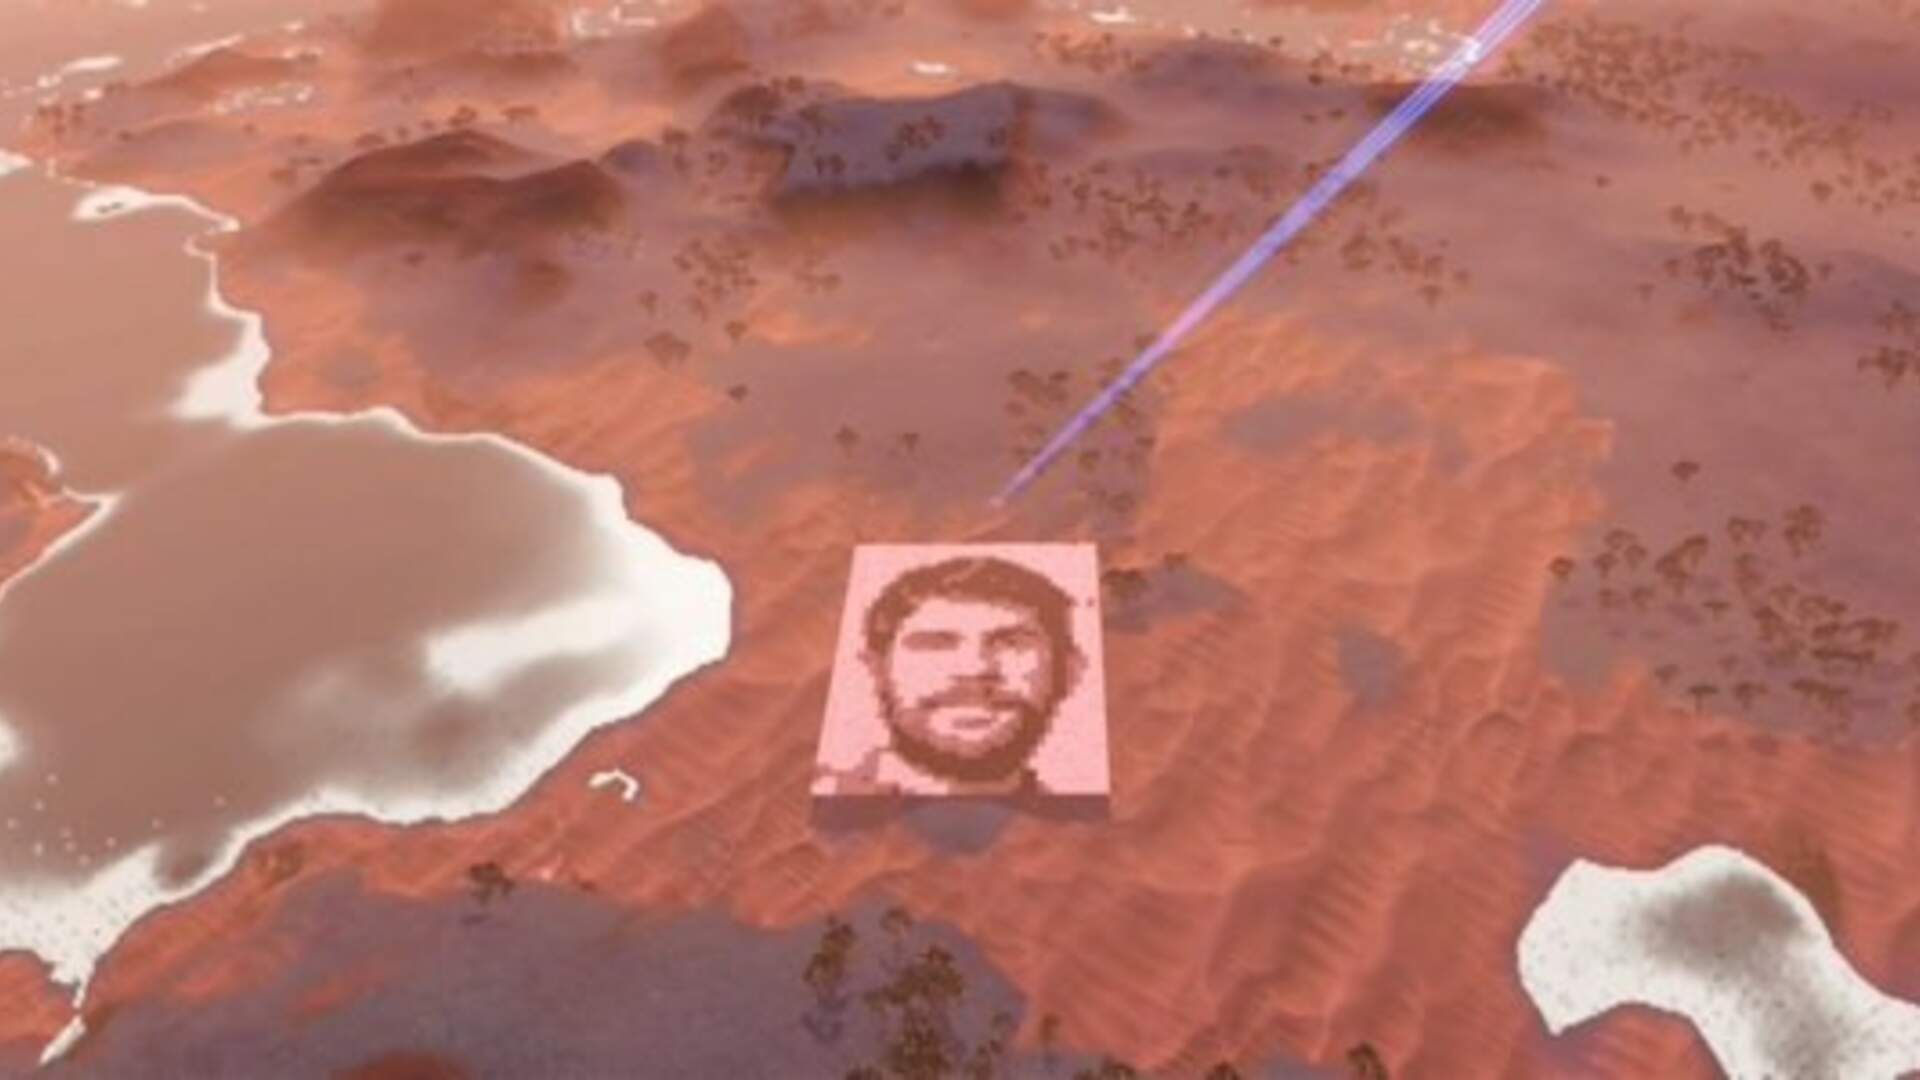 No Man's Sky Player Builds Giant Profile of Game's Creator That's Viewable from Space